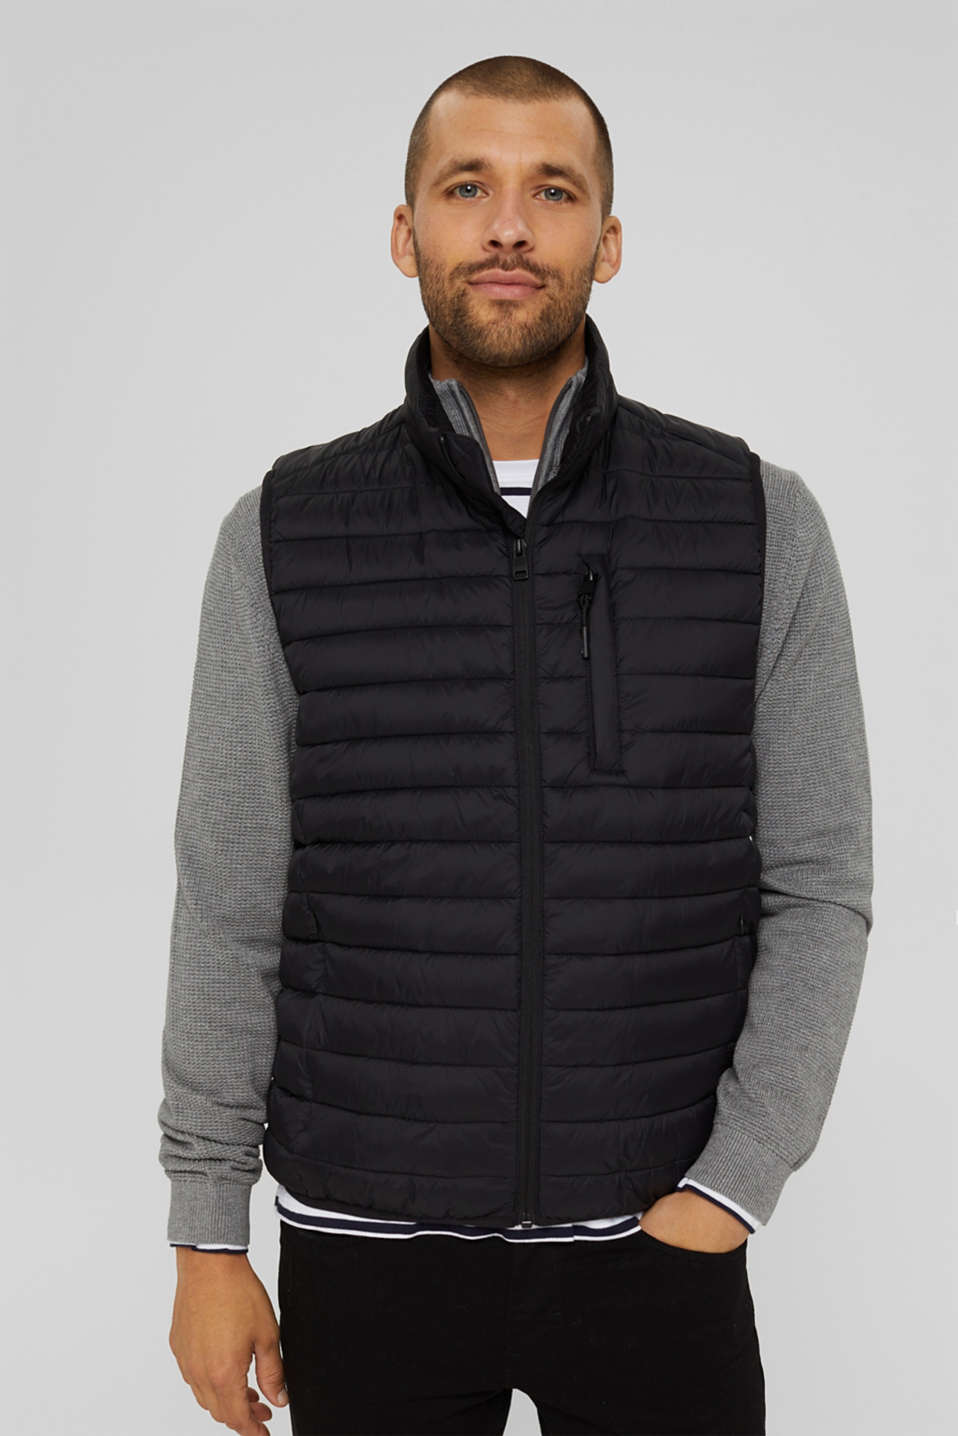 Esprit - Quiltet vest 3M™Thinsulate™